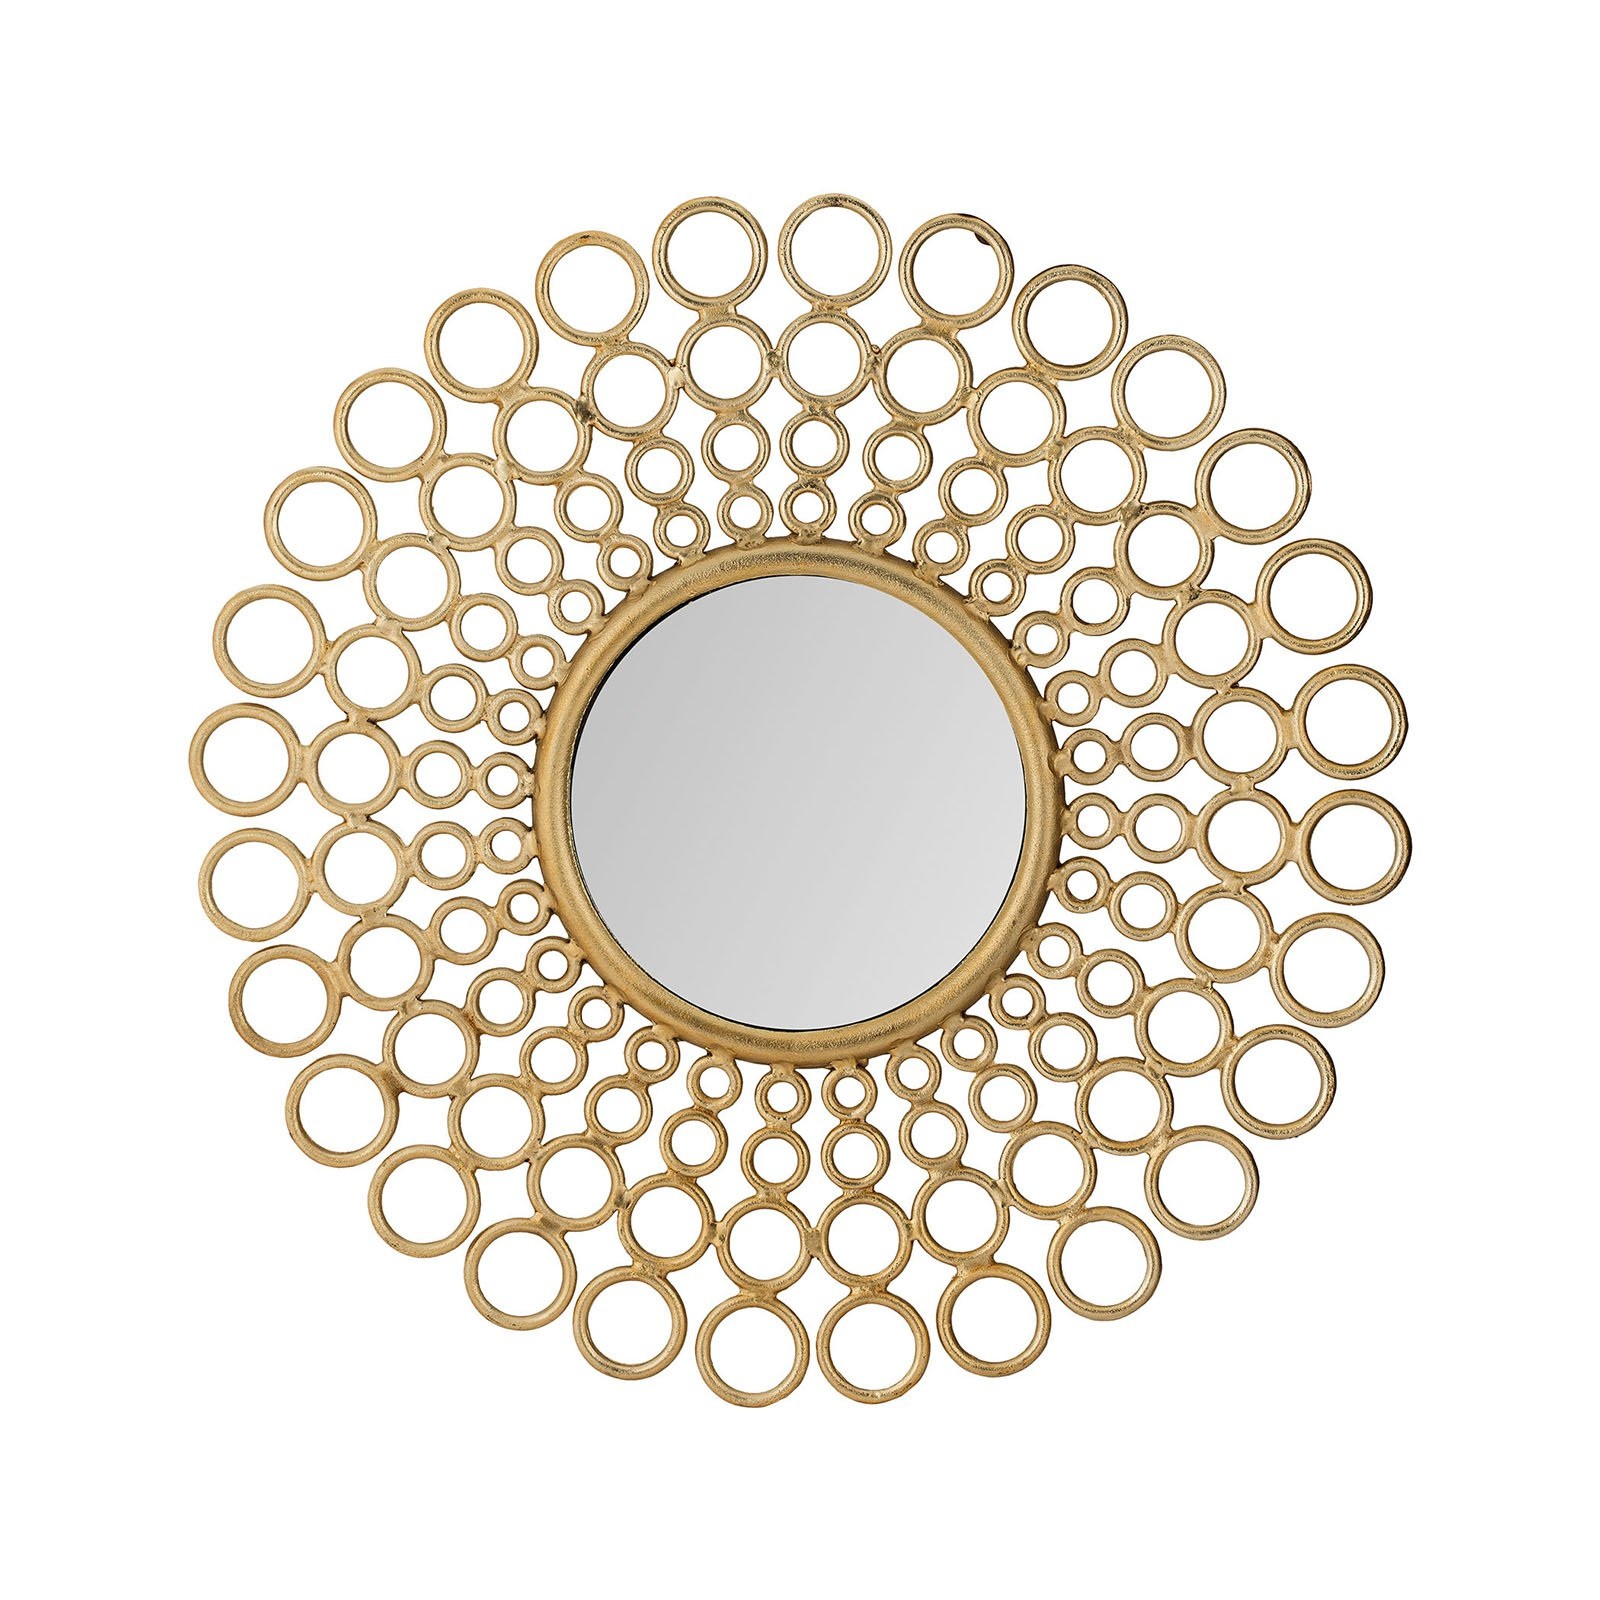 Dimond Home Cast Ring Wall Mirror - 31.5 diam. in.